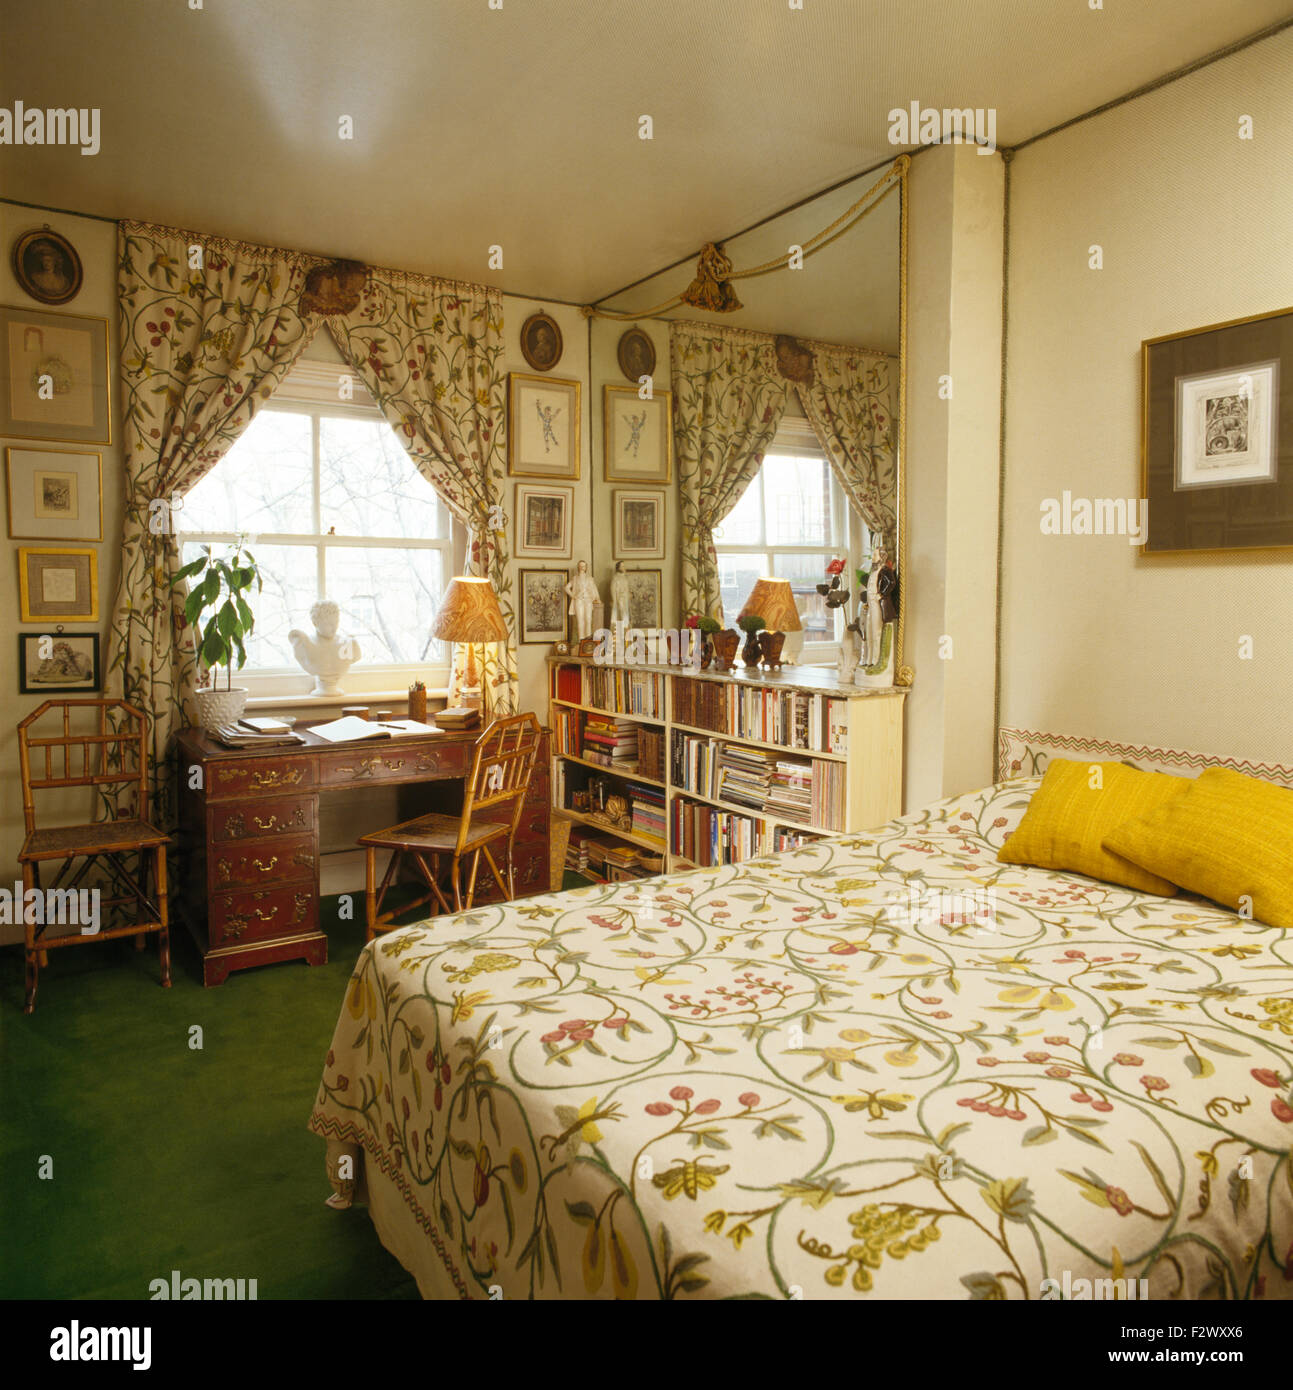 Crewelwork bedcover and curtains in eighties study bedroom - Stock Image